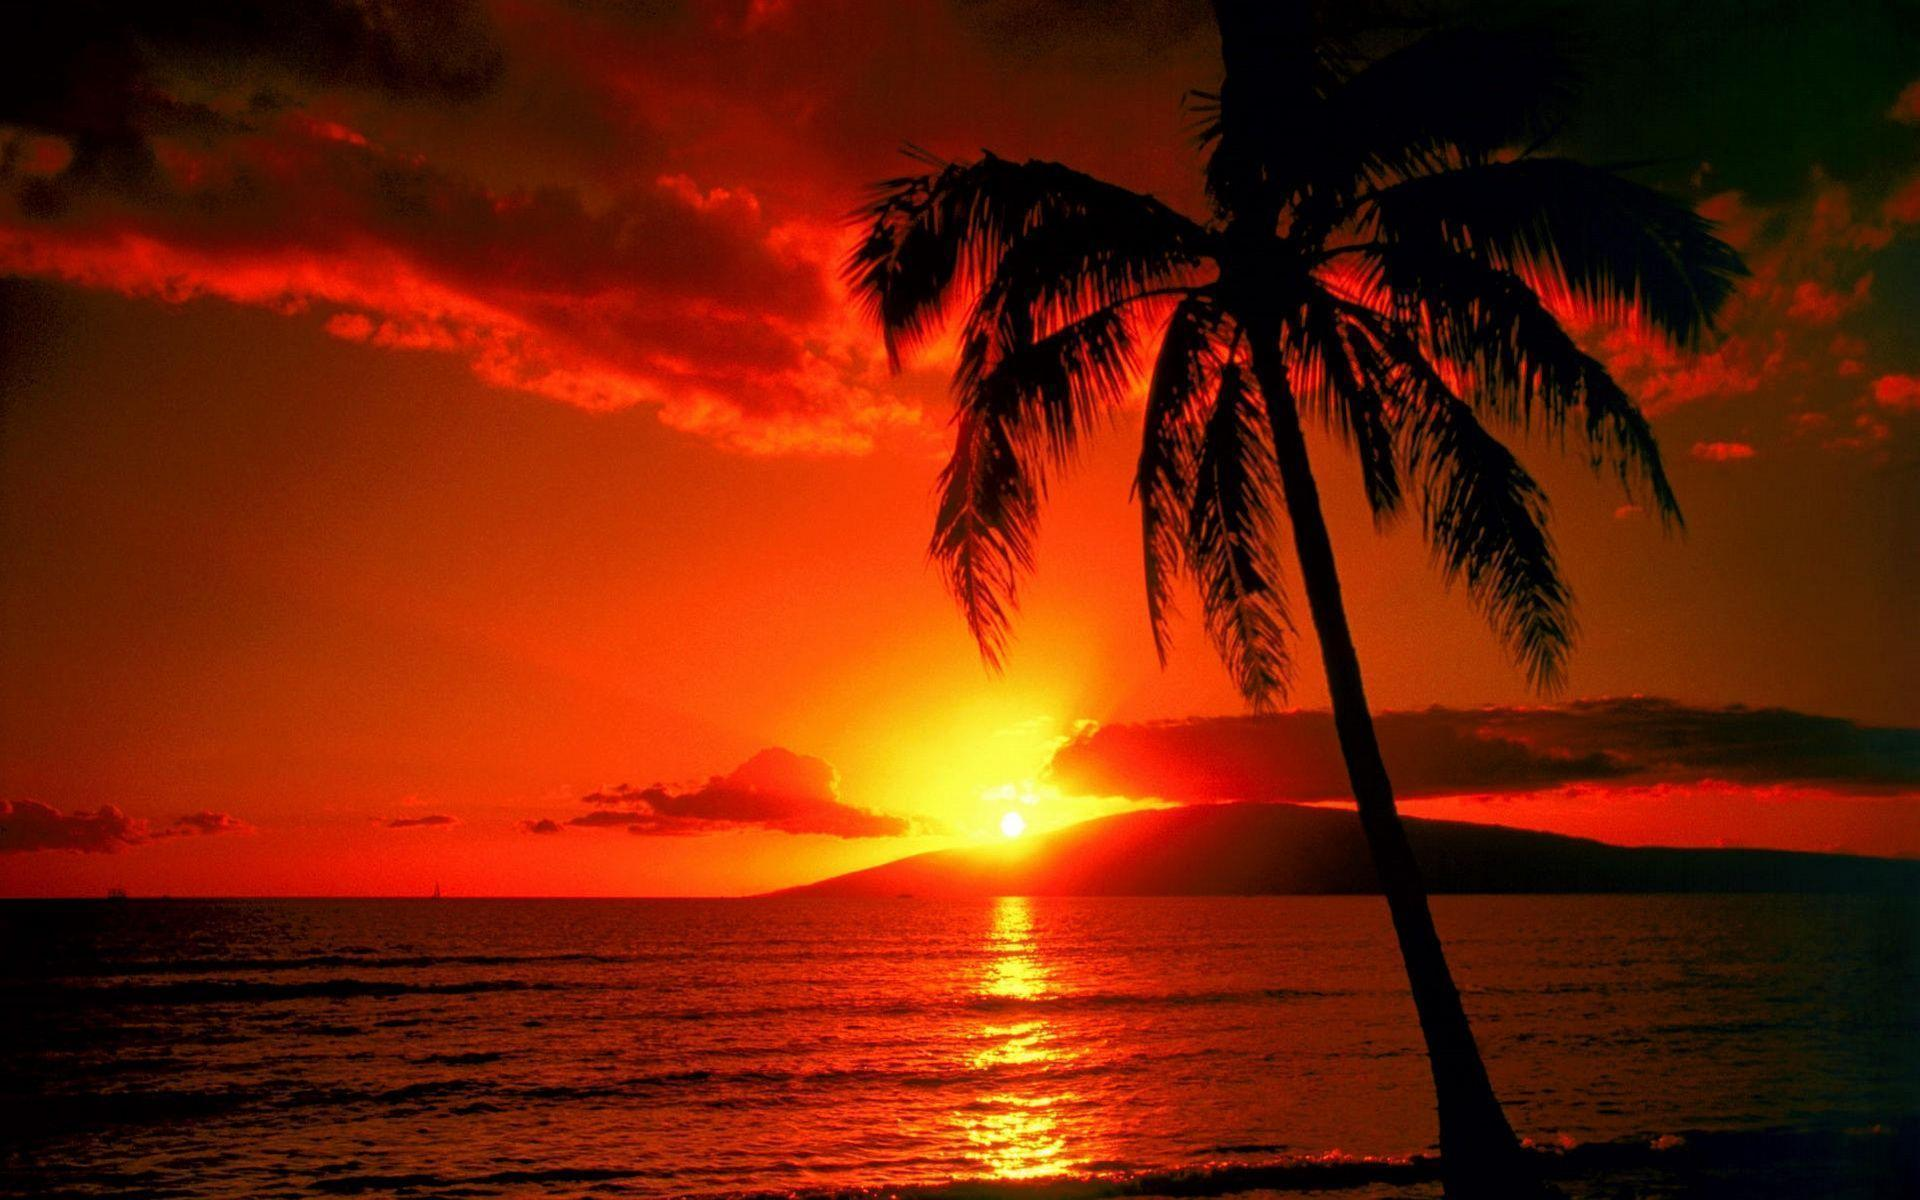 Sunset Beach HD Wallpapers | Beach sunset Desktop Images | Cool ...